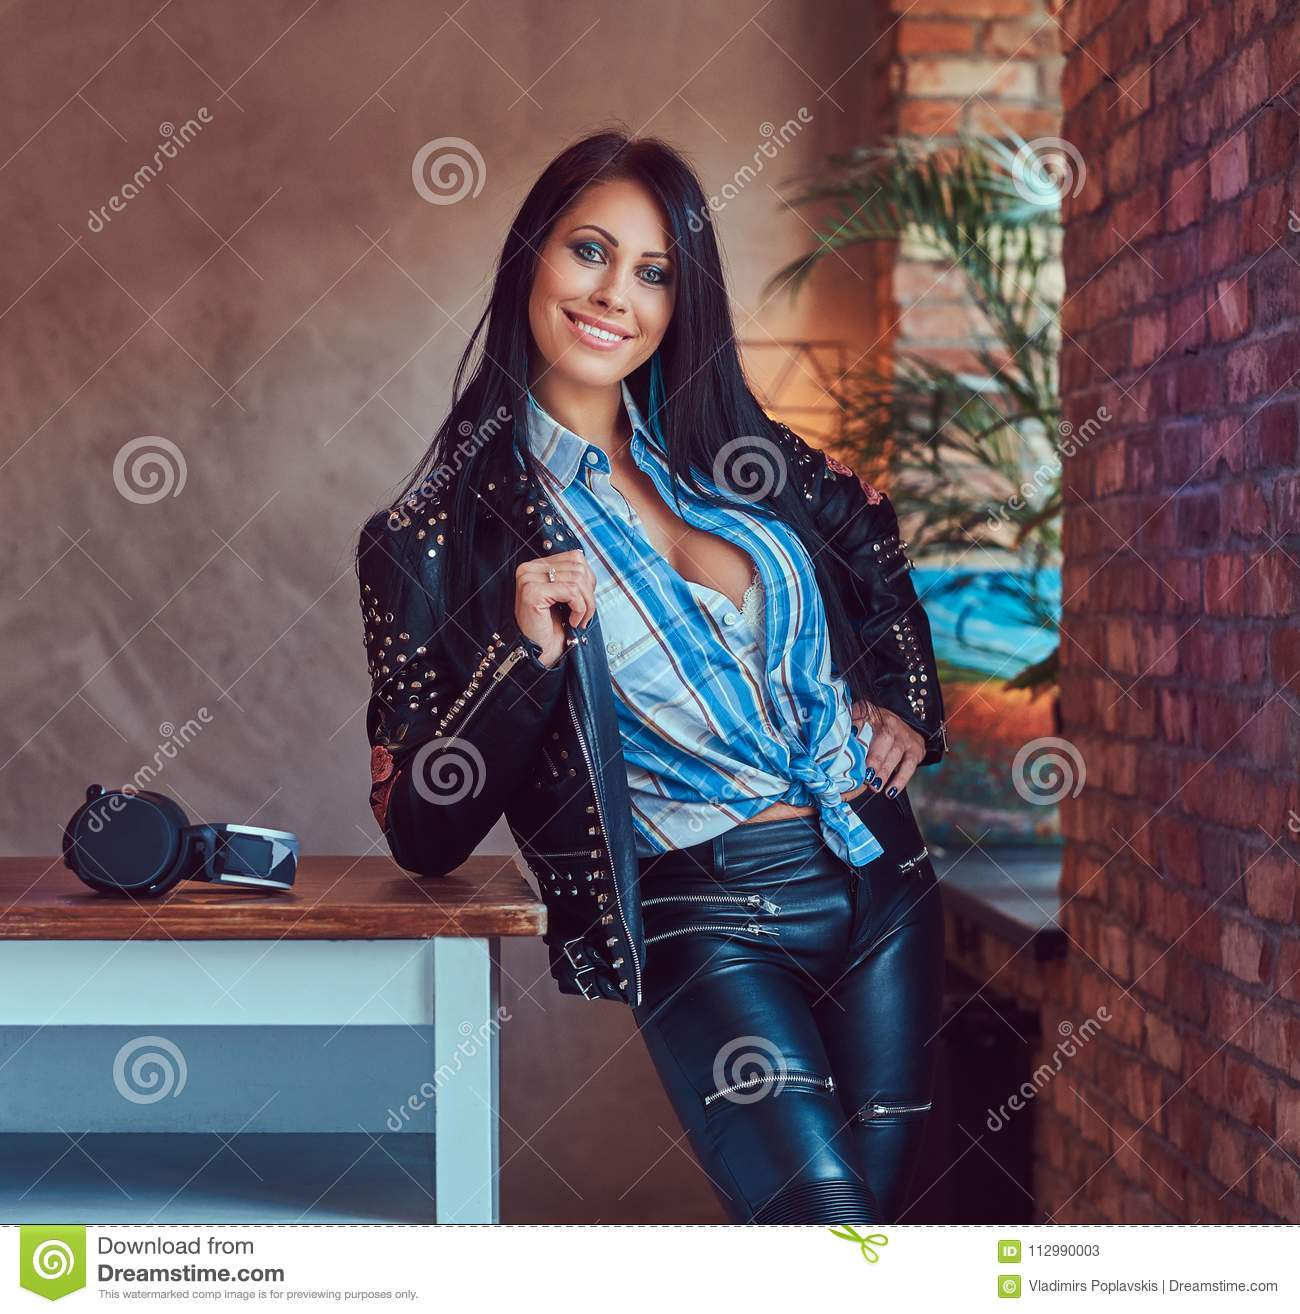 Portrait of a smiling sensual brunette posing in a stylish leather jacket and jeans leaning on a table in a studio